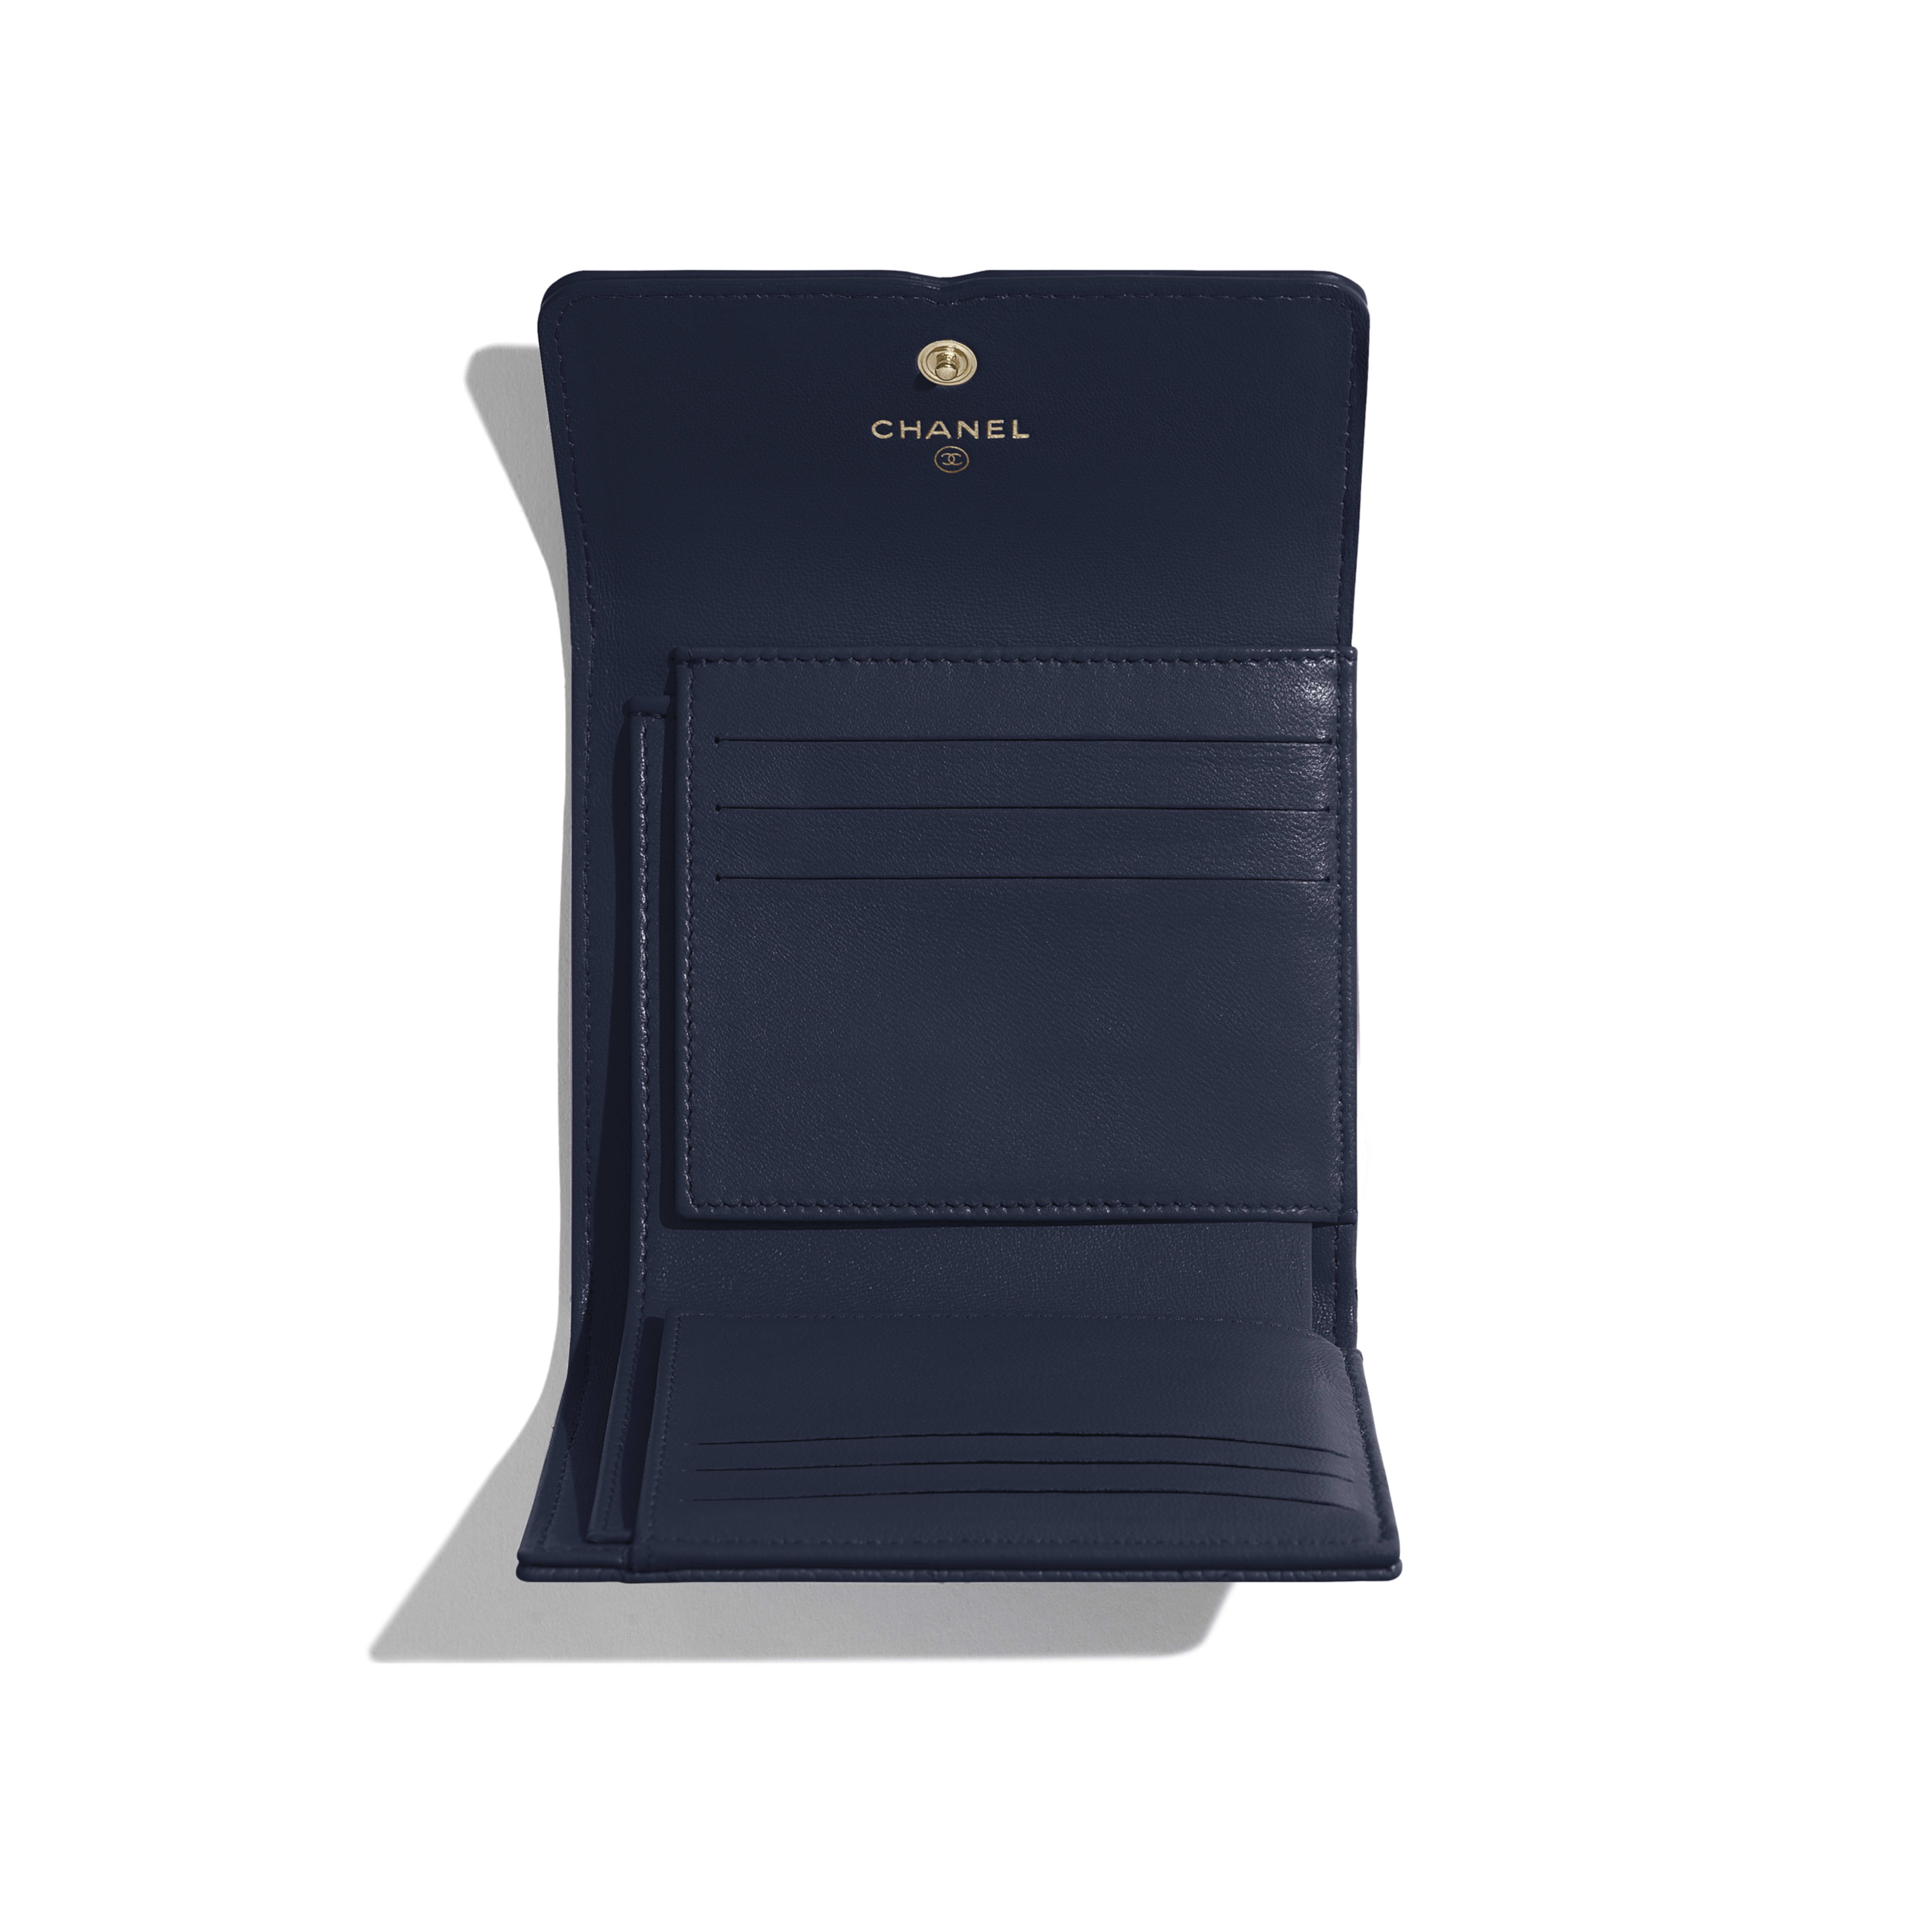 Small Flap Wallet - Navy Blue - Grained Calfskin & Gold-Tone Metal - Other view - see full sized version